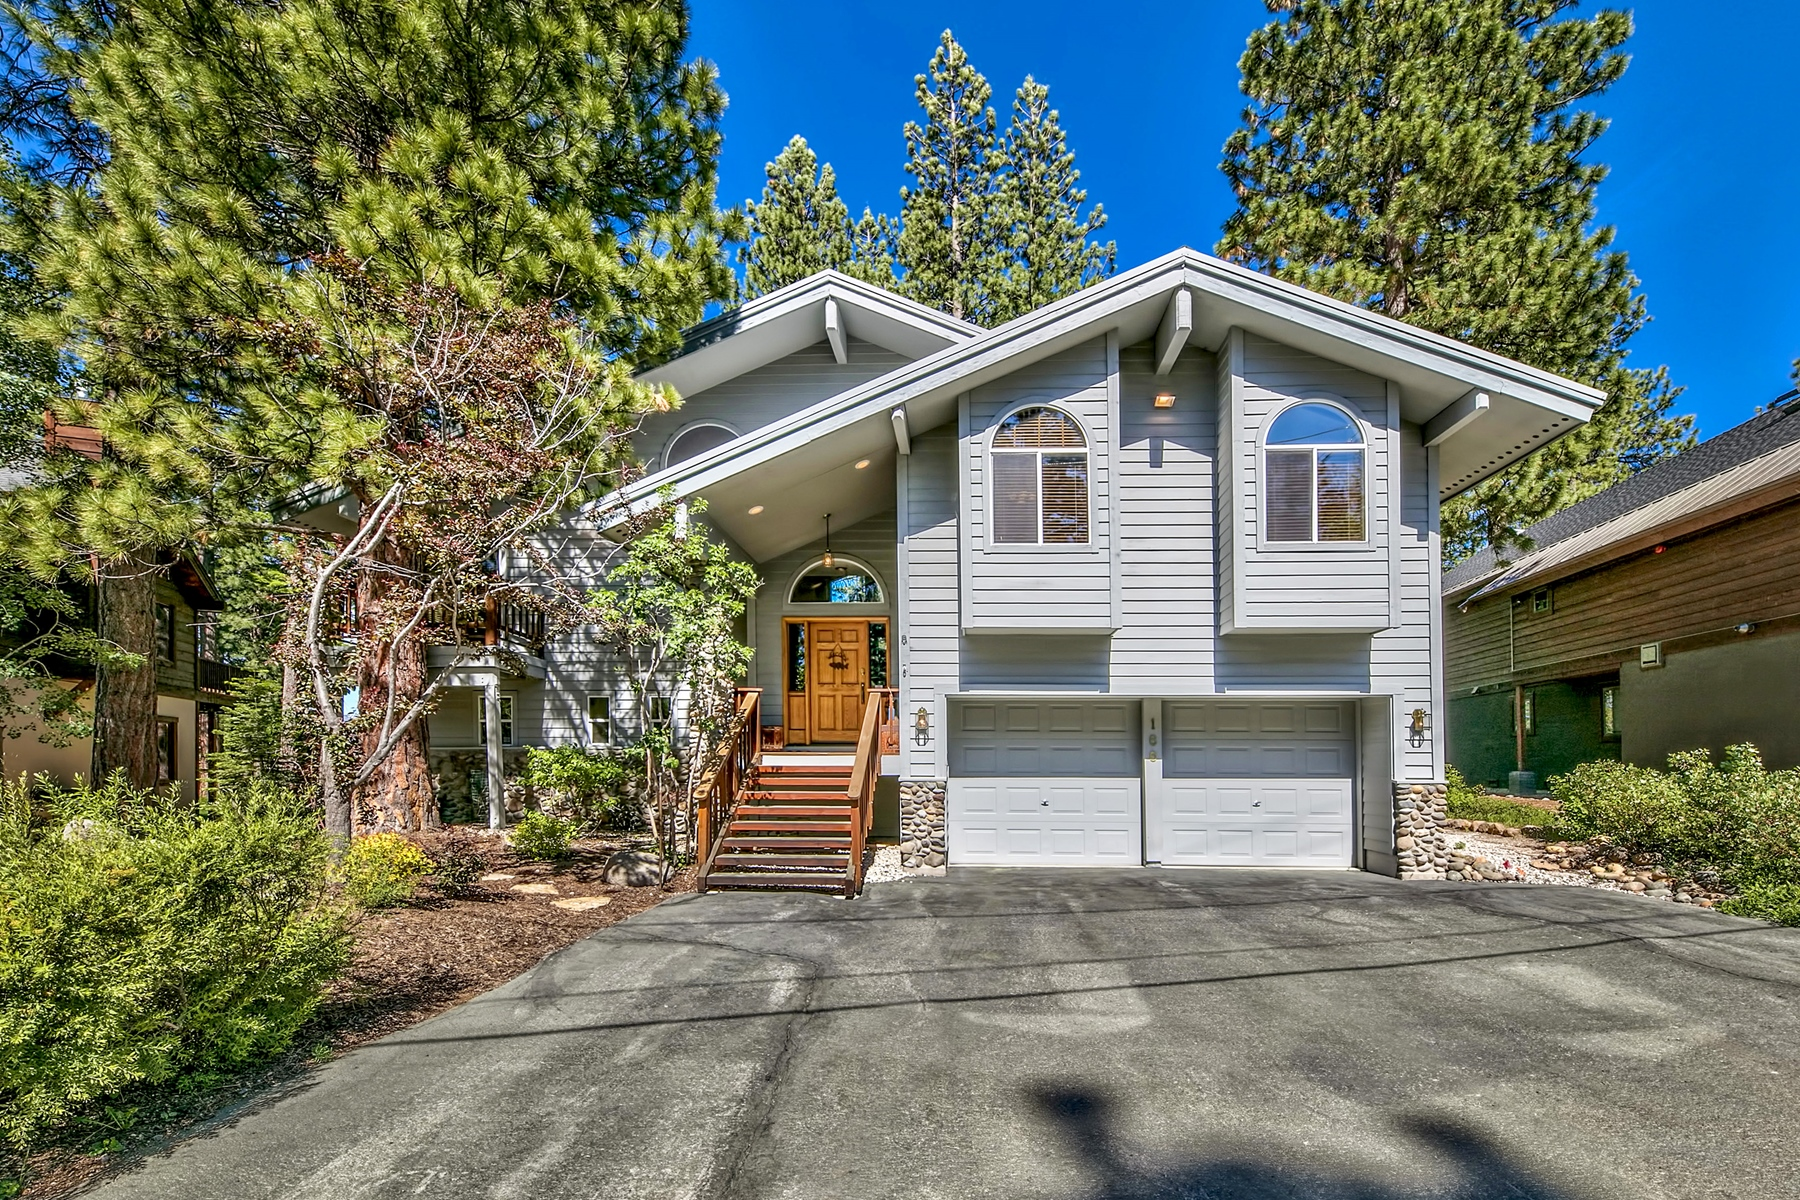 Single Family Homes for Active at 166 Roundridge Rd. Tahoe City, Ca 96145 166 Roundridge Rd. Tahoe City, California 96145 United States